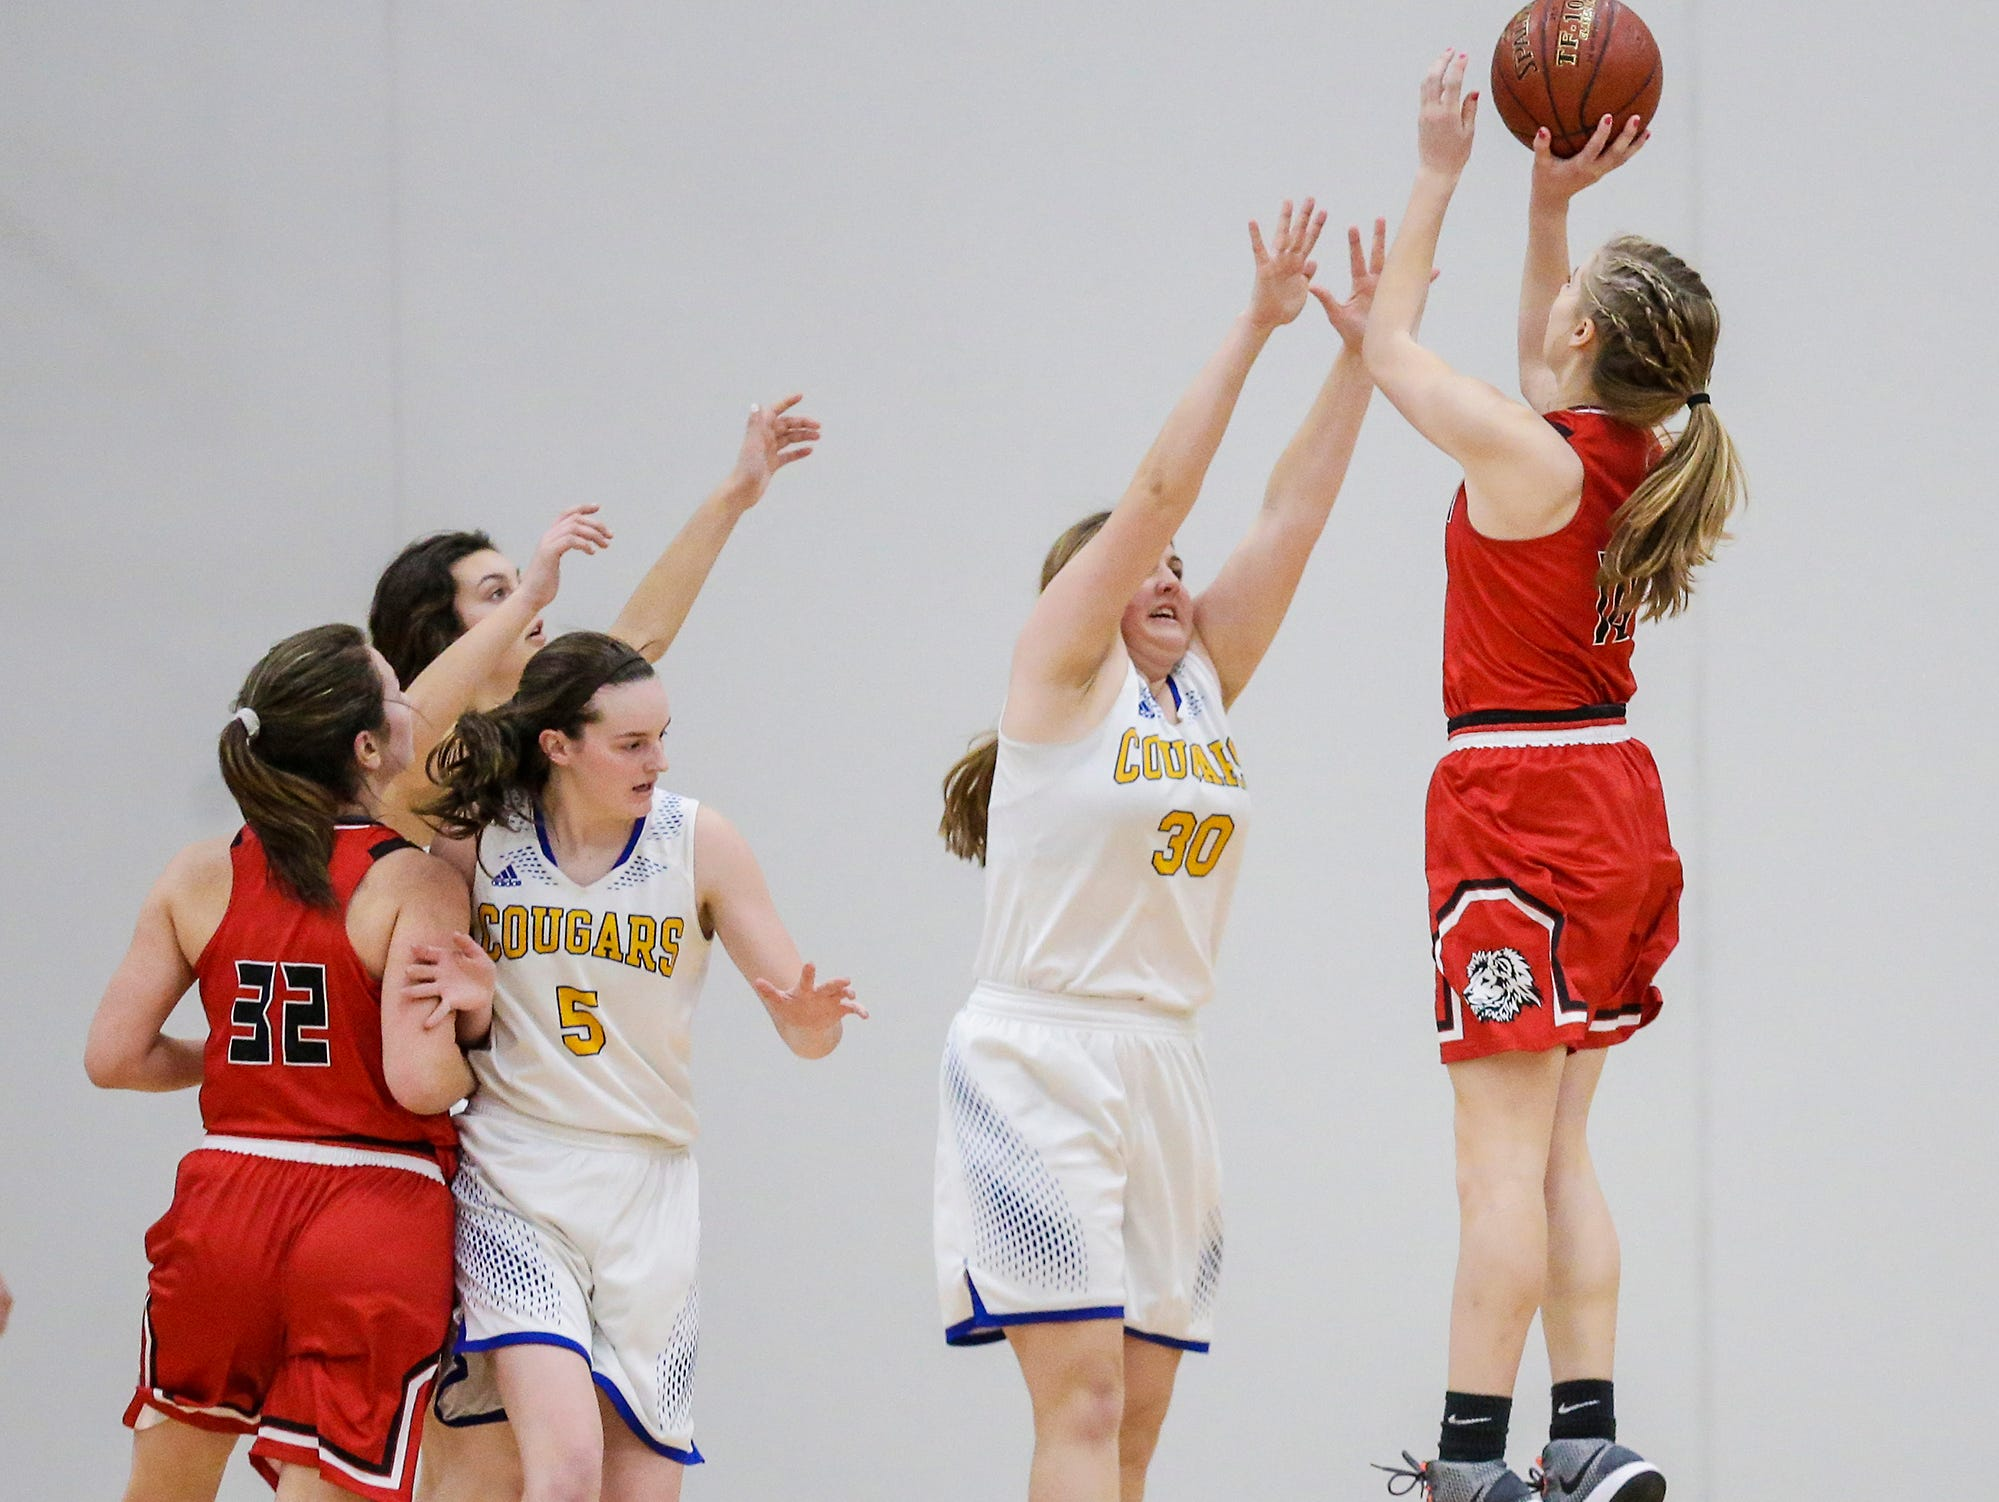 Lomira High School girls basketball's Autumn Schrauth shoots for a basket over Campbellsport High School's Shayley Narges during their game Friday, December 28, 2018 in Campbellsport. Doug Raflik/USA TODAY NETWORK-Wisconsin